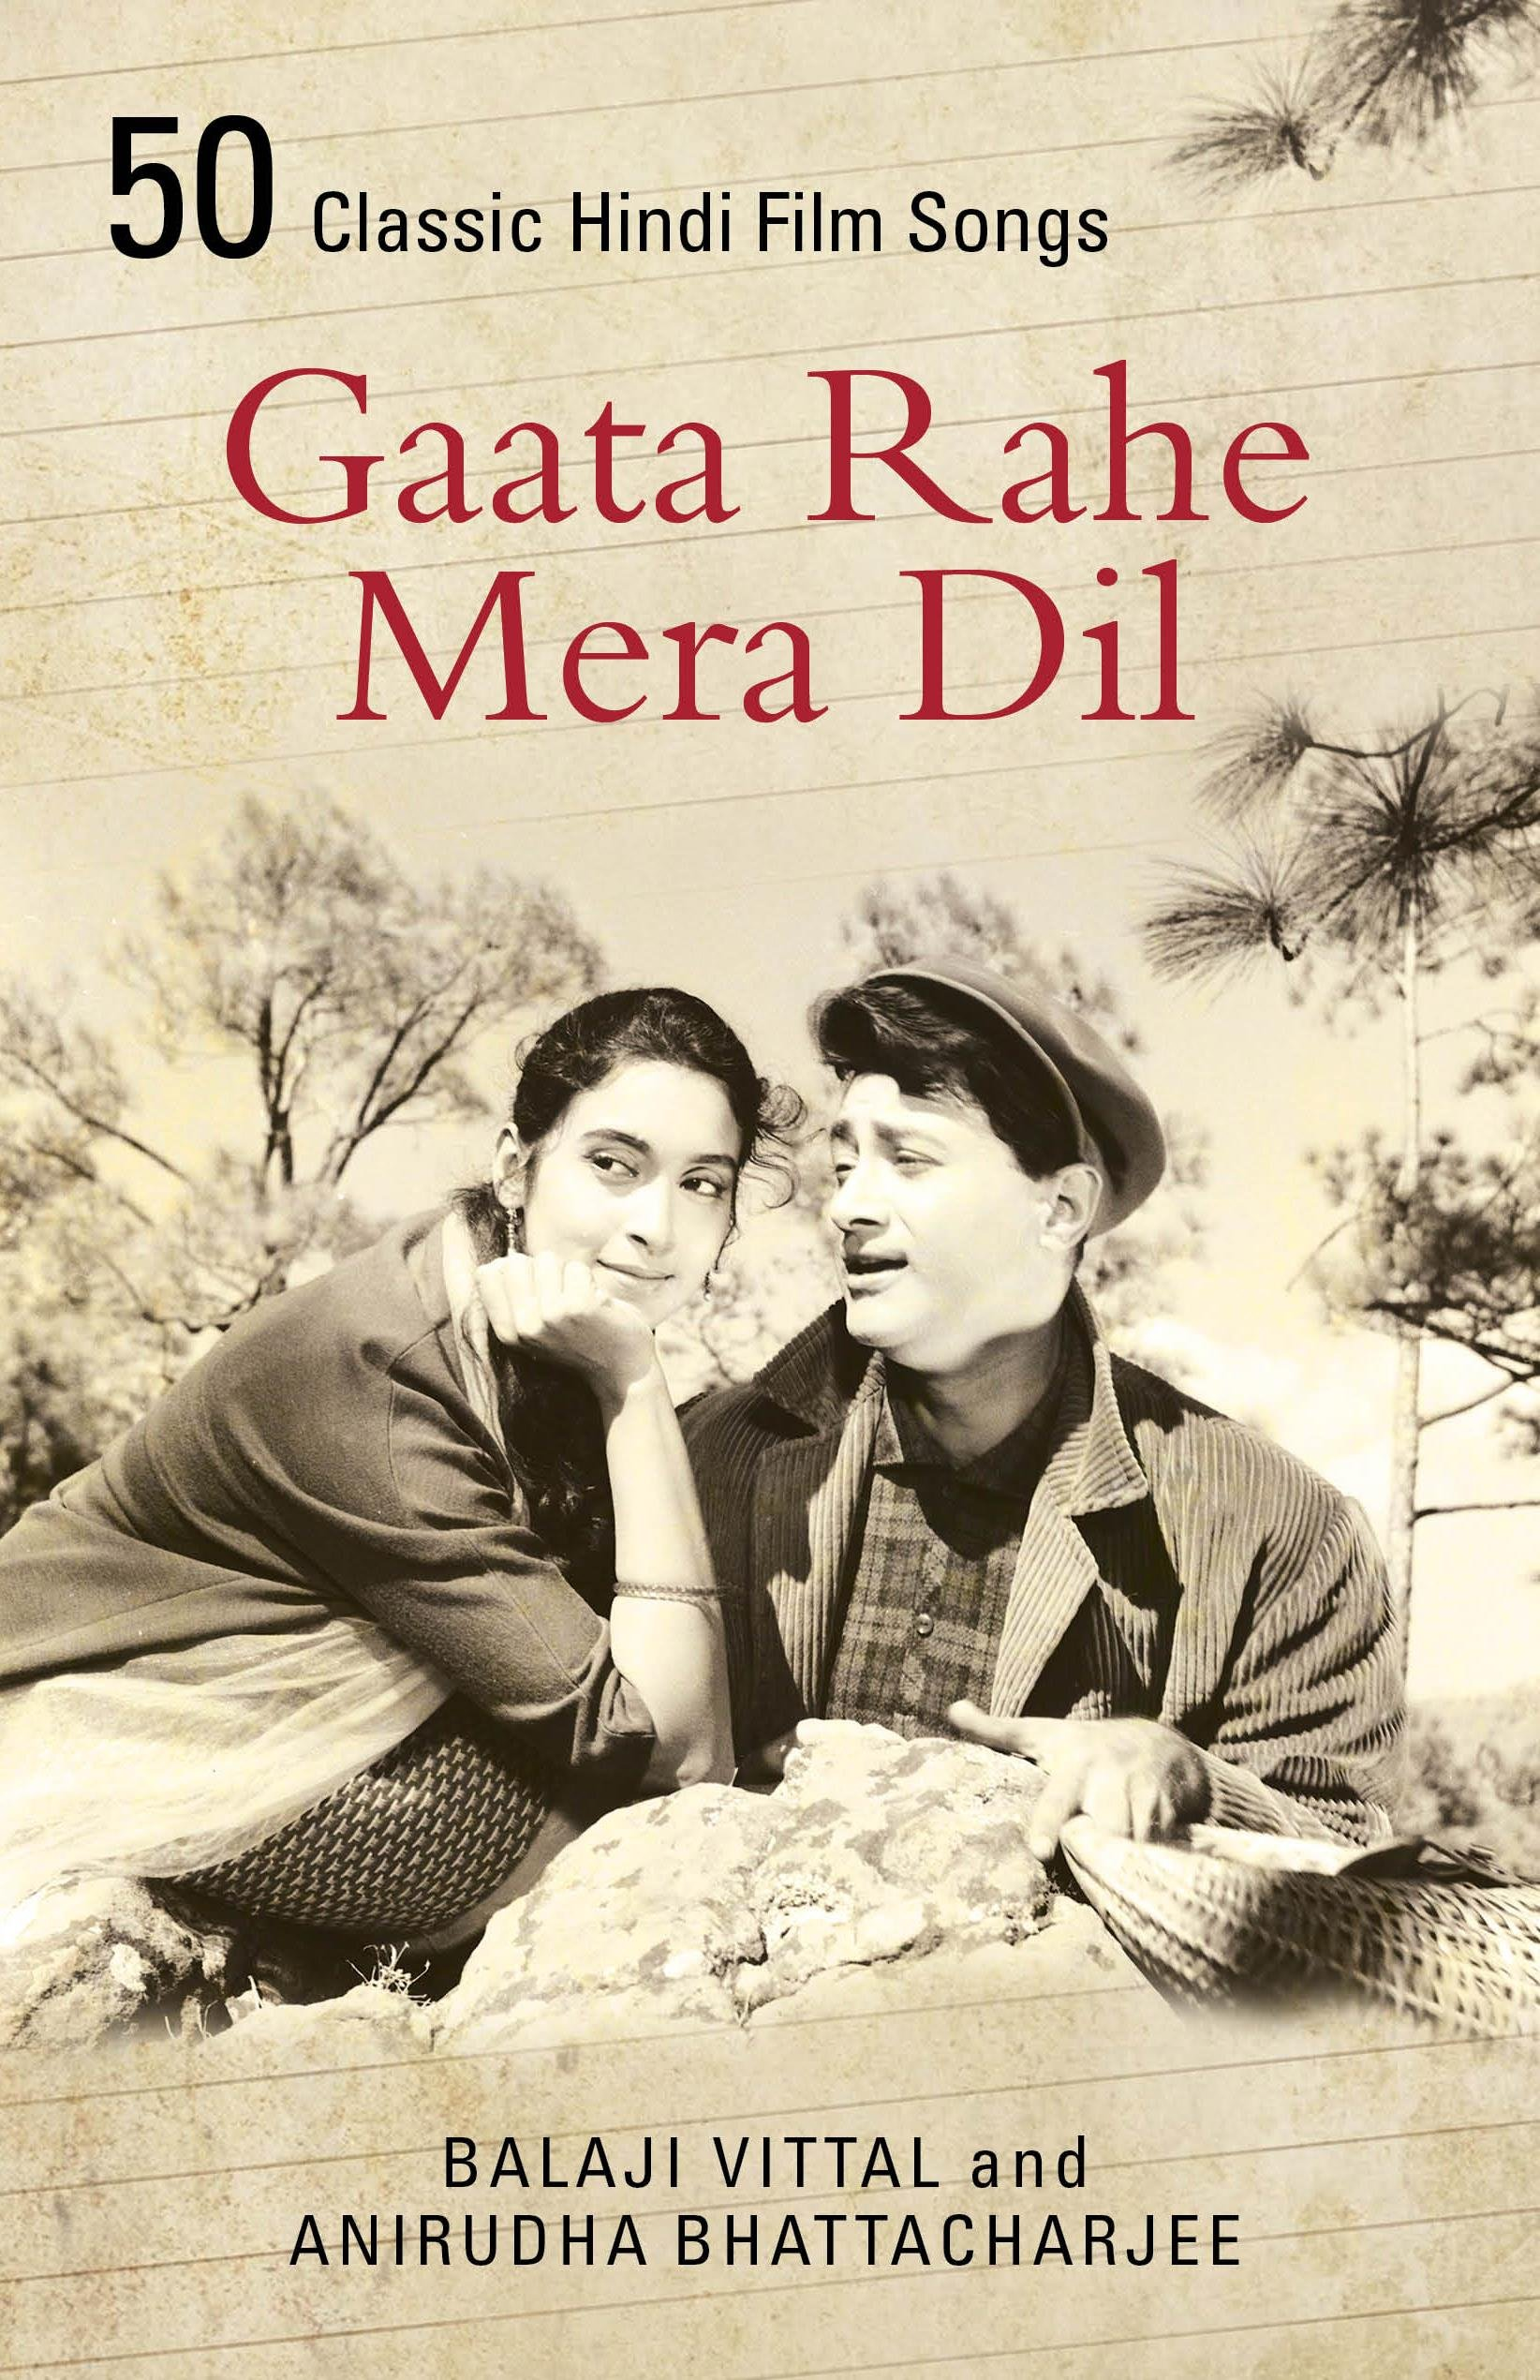 Buy Gaata Rahe Mera Dil: 50 Classic Hindi Film Songs Book Online at